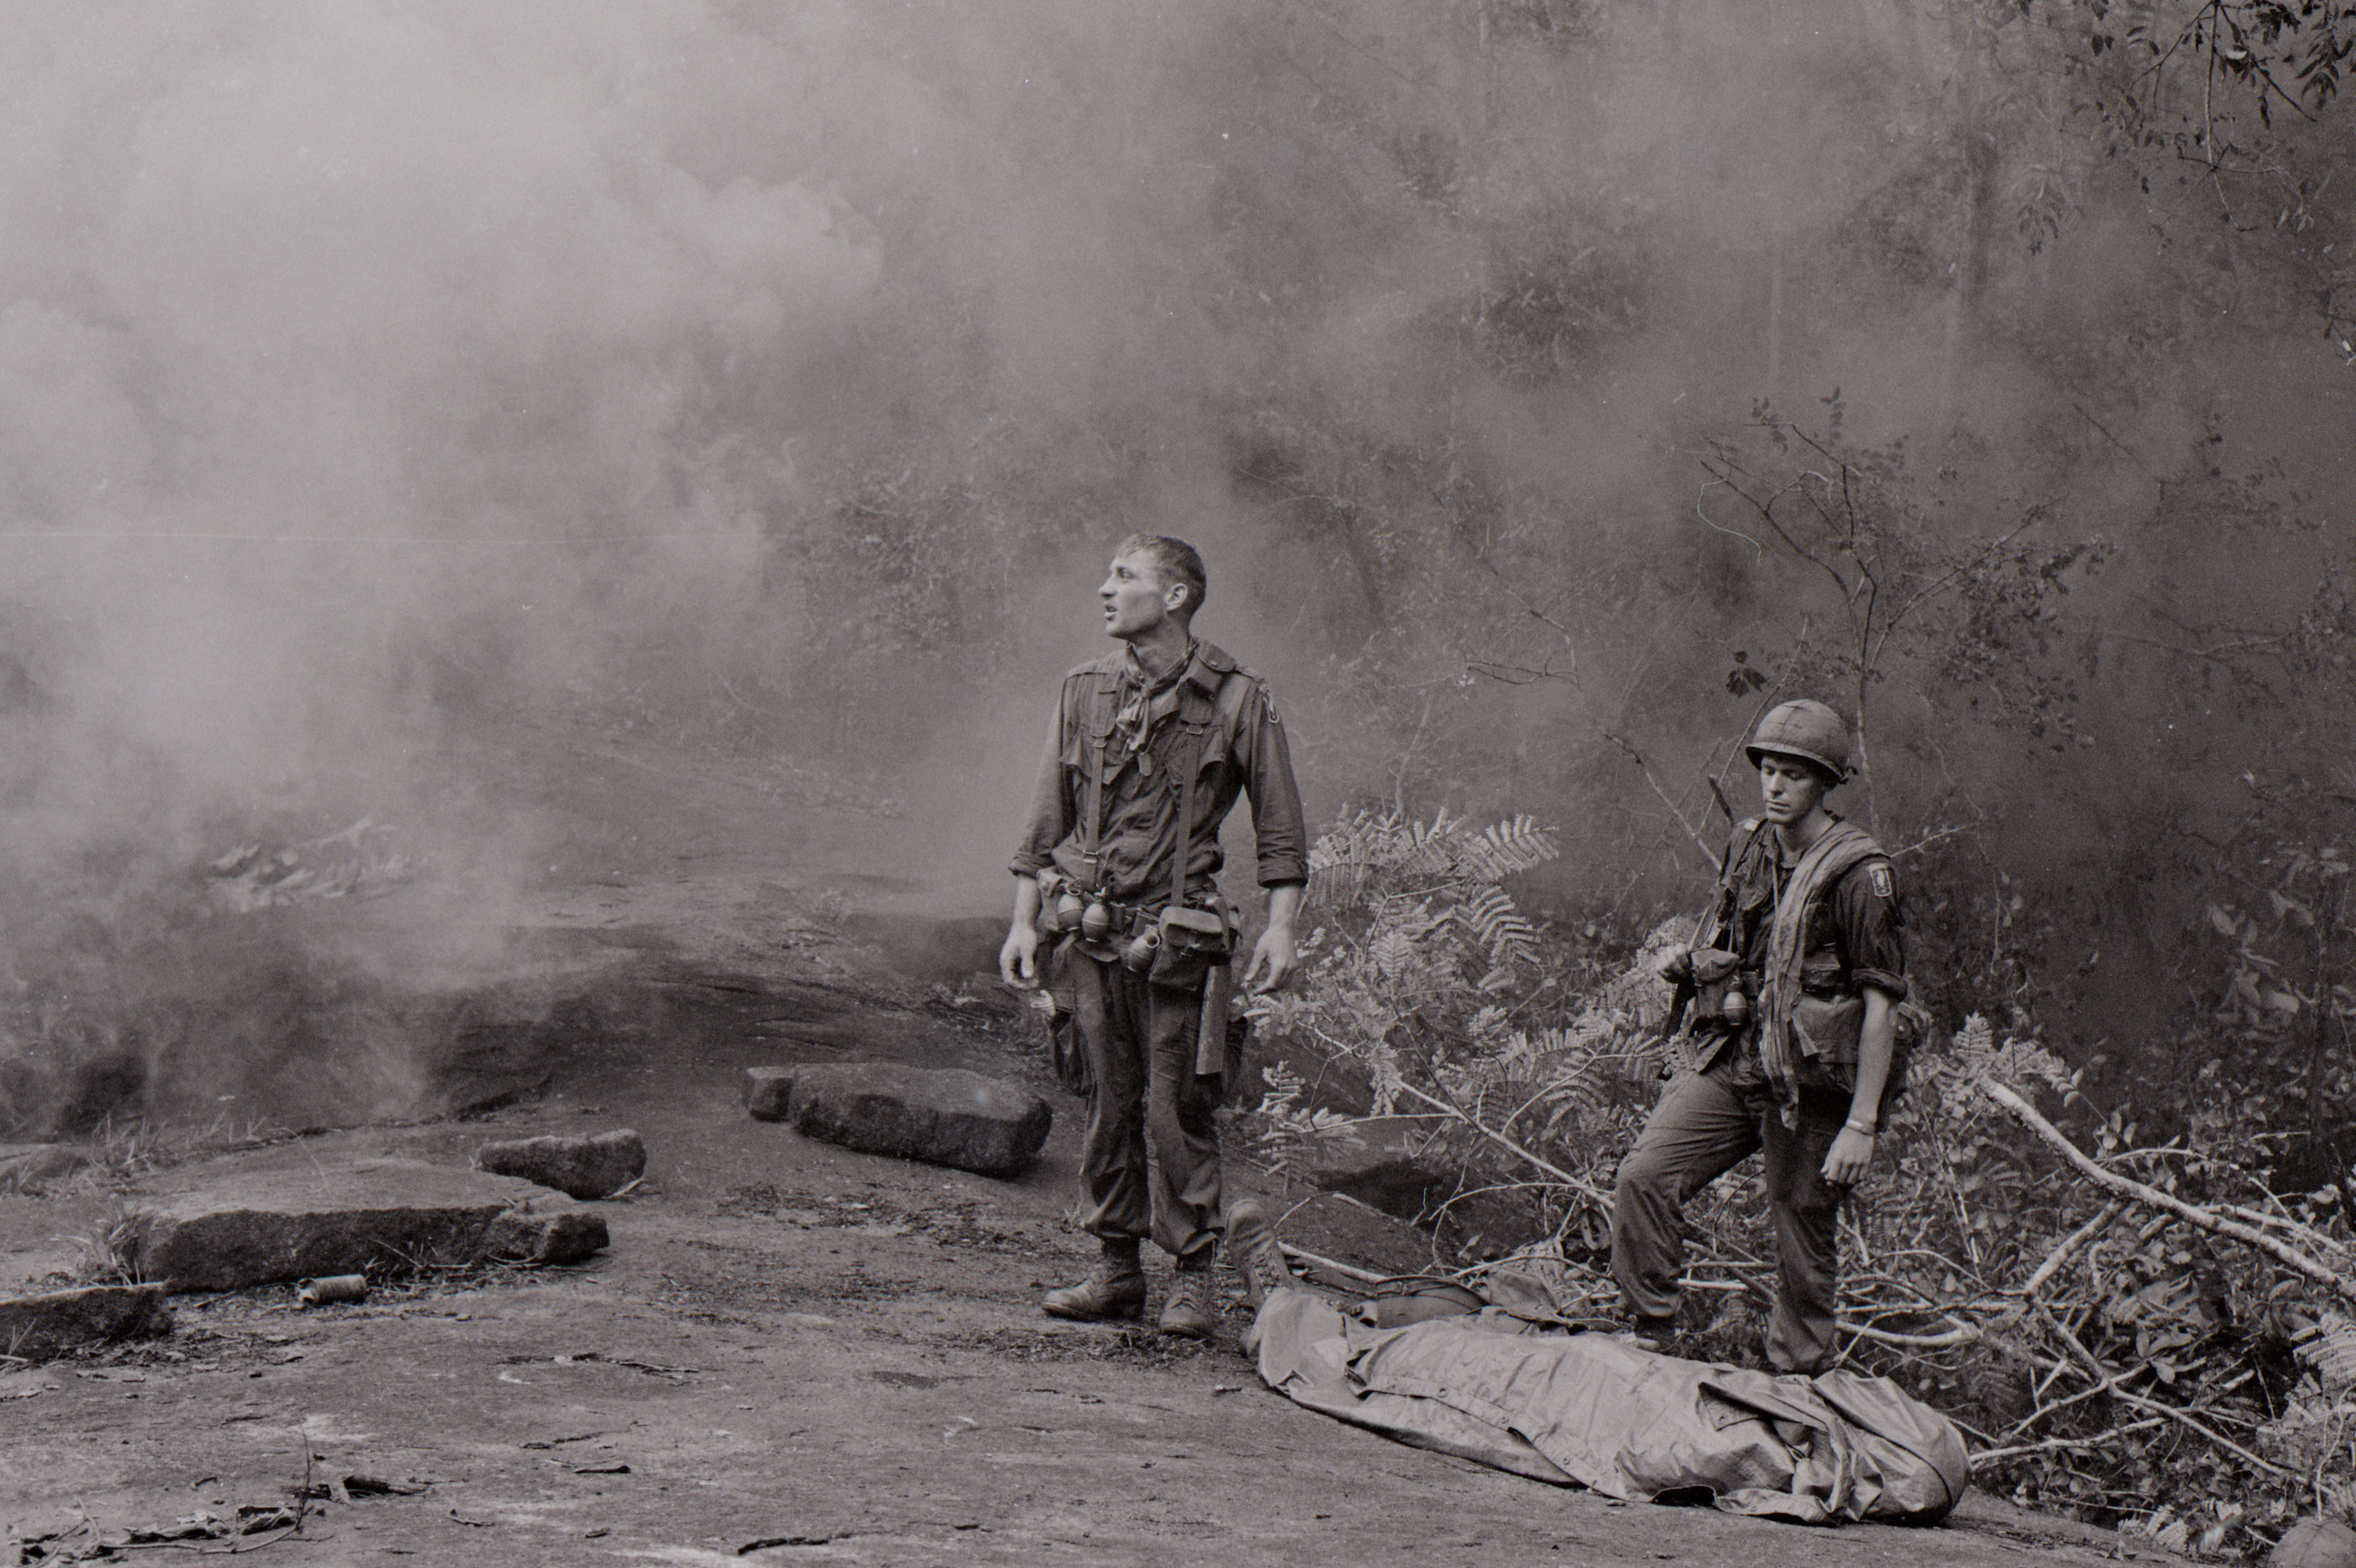 ken burns interview image vietnam war